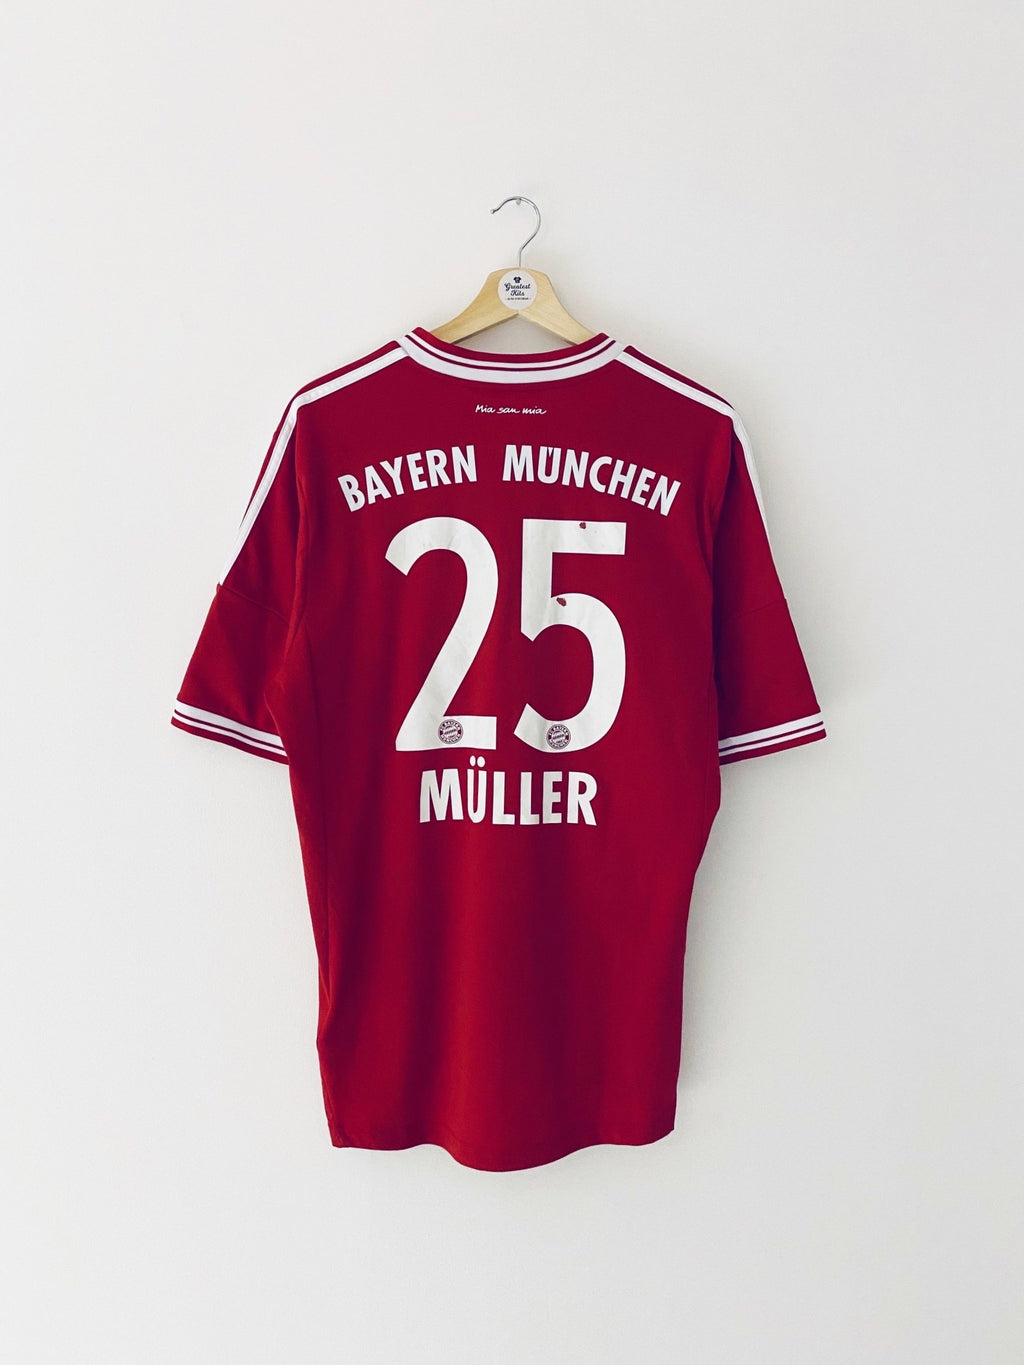 2013/14 Bayern Munich Home Shirt Muller #25 (L) 7/10